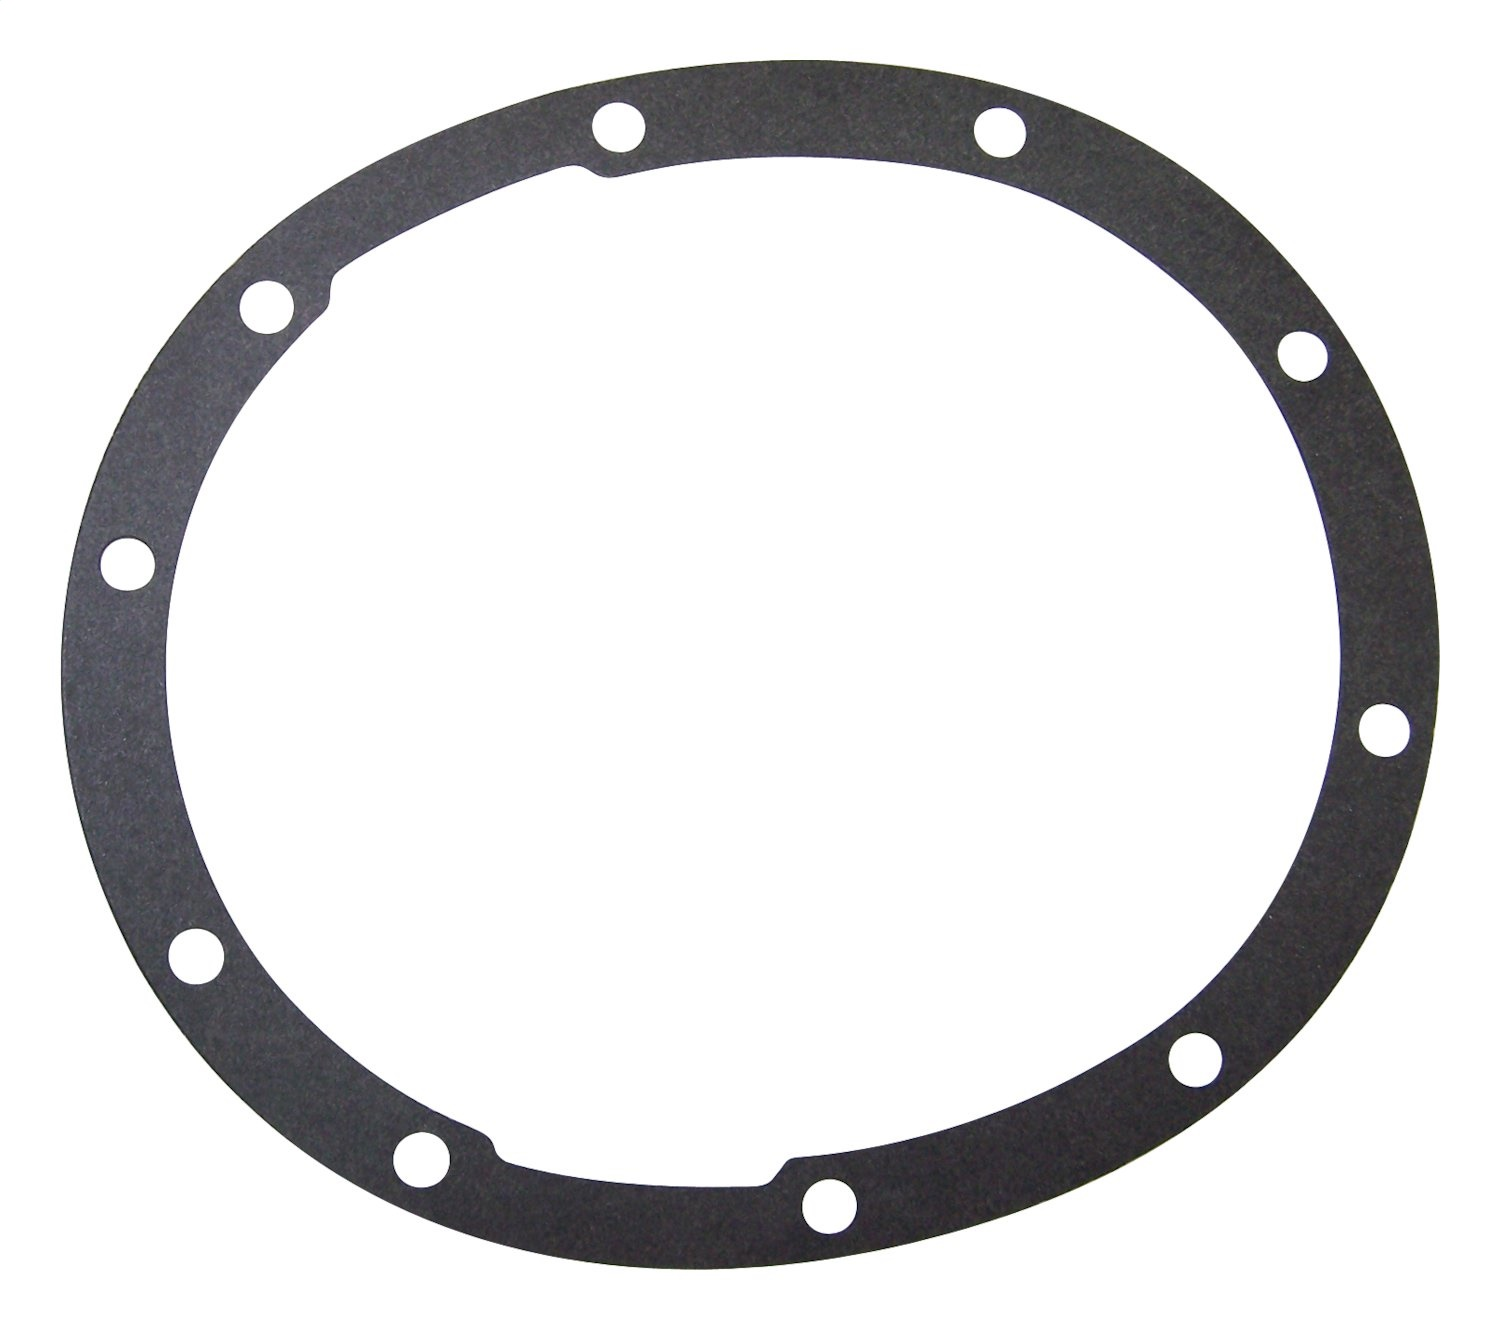 Crown Automotive 35AXCG Differential Cover Gasket